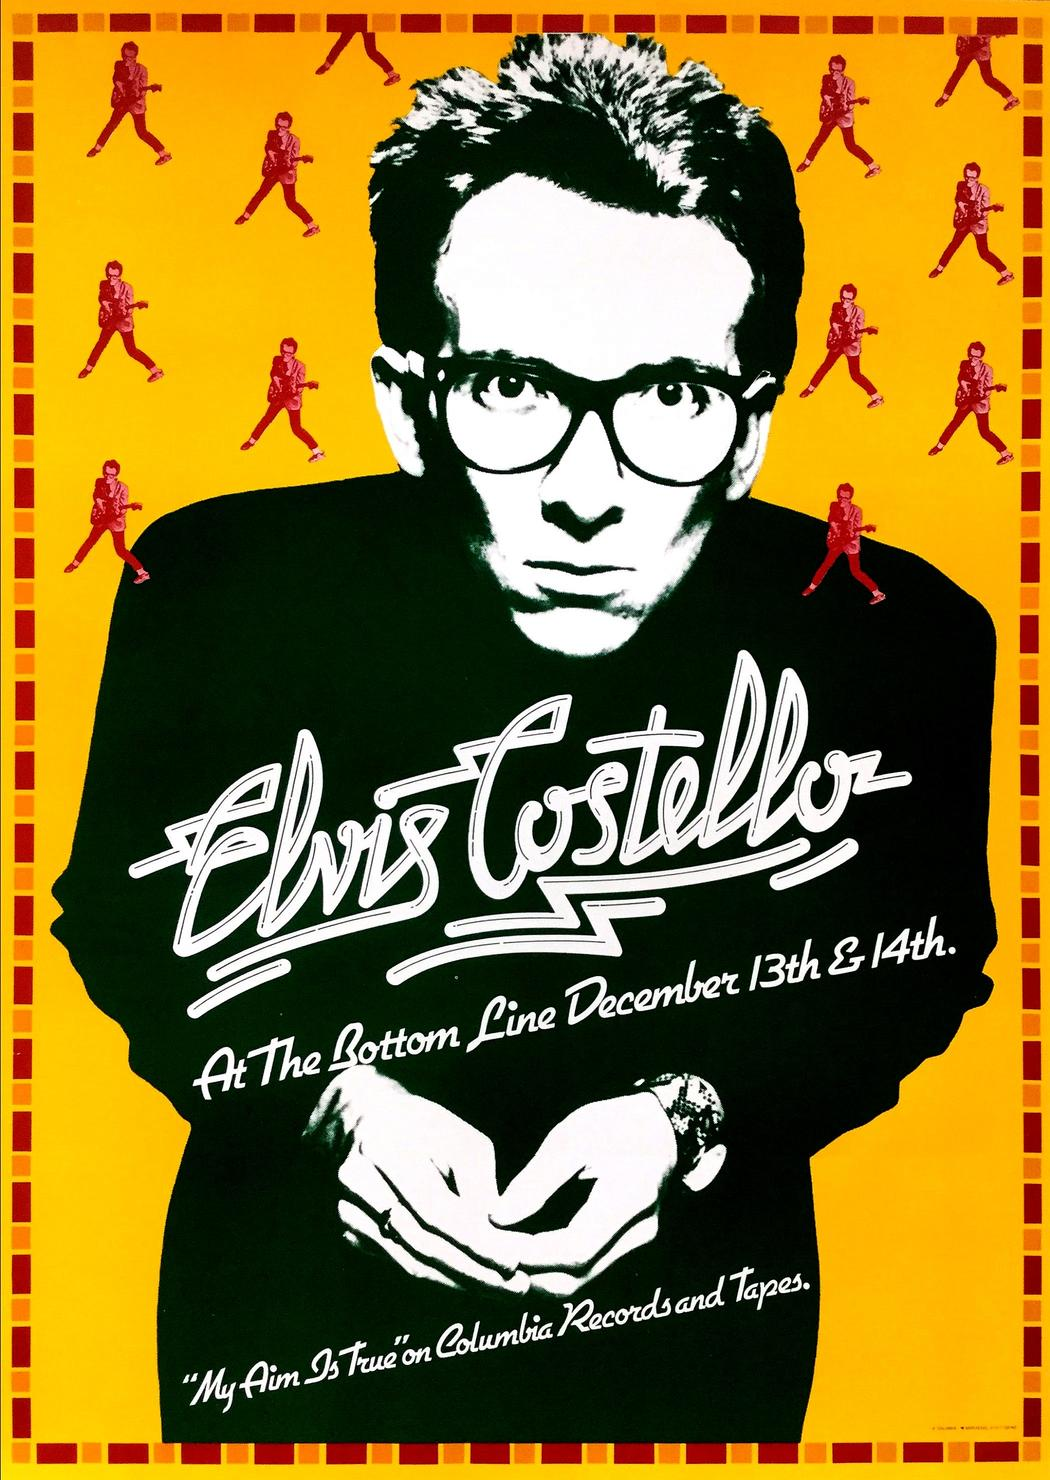 1507039843418-1977-elvis-costello-bottom-line